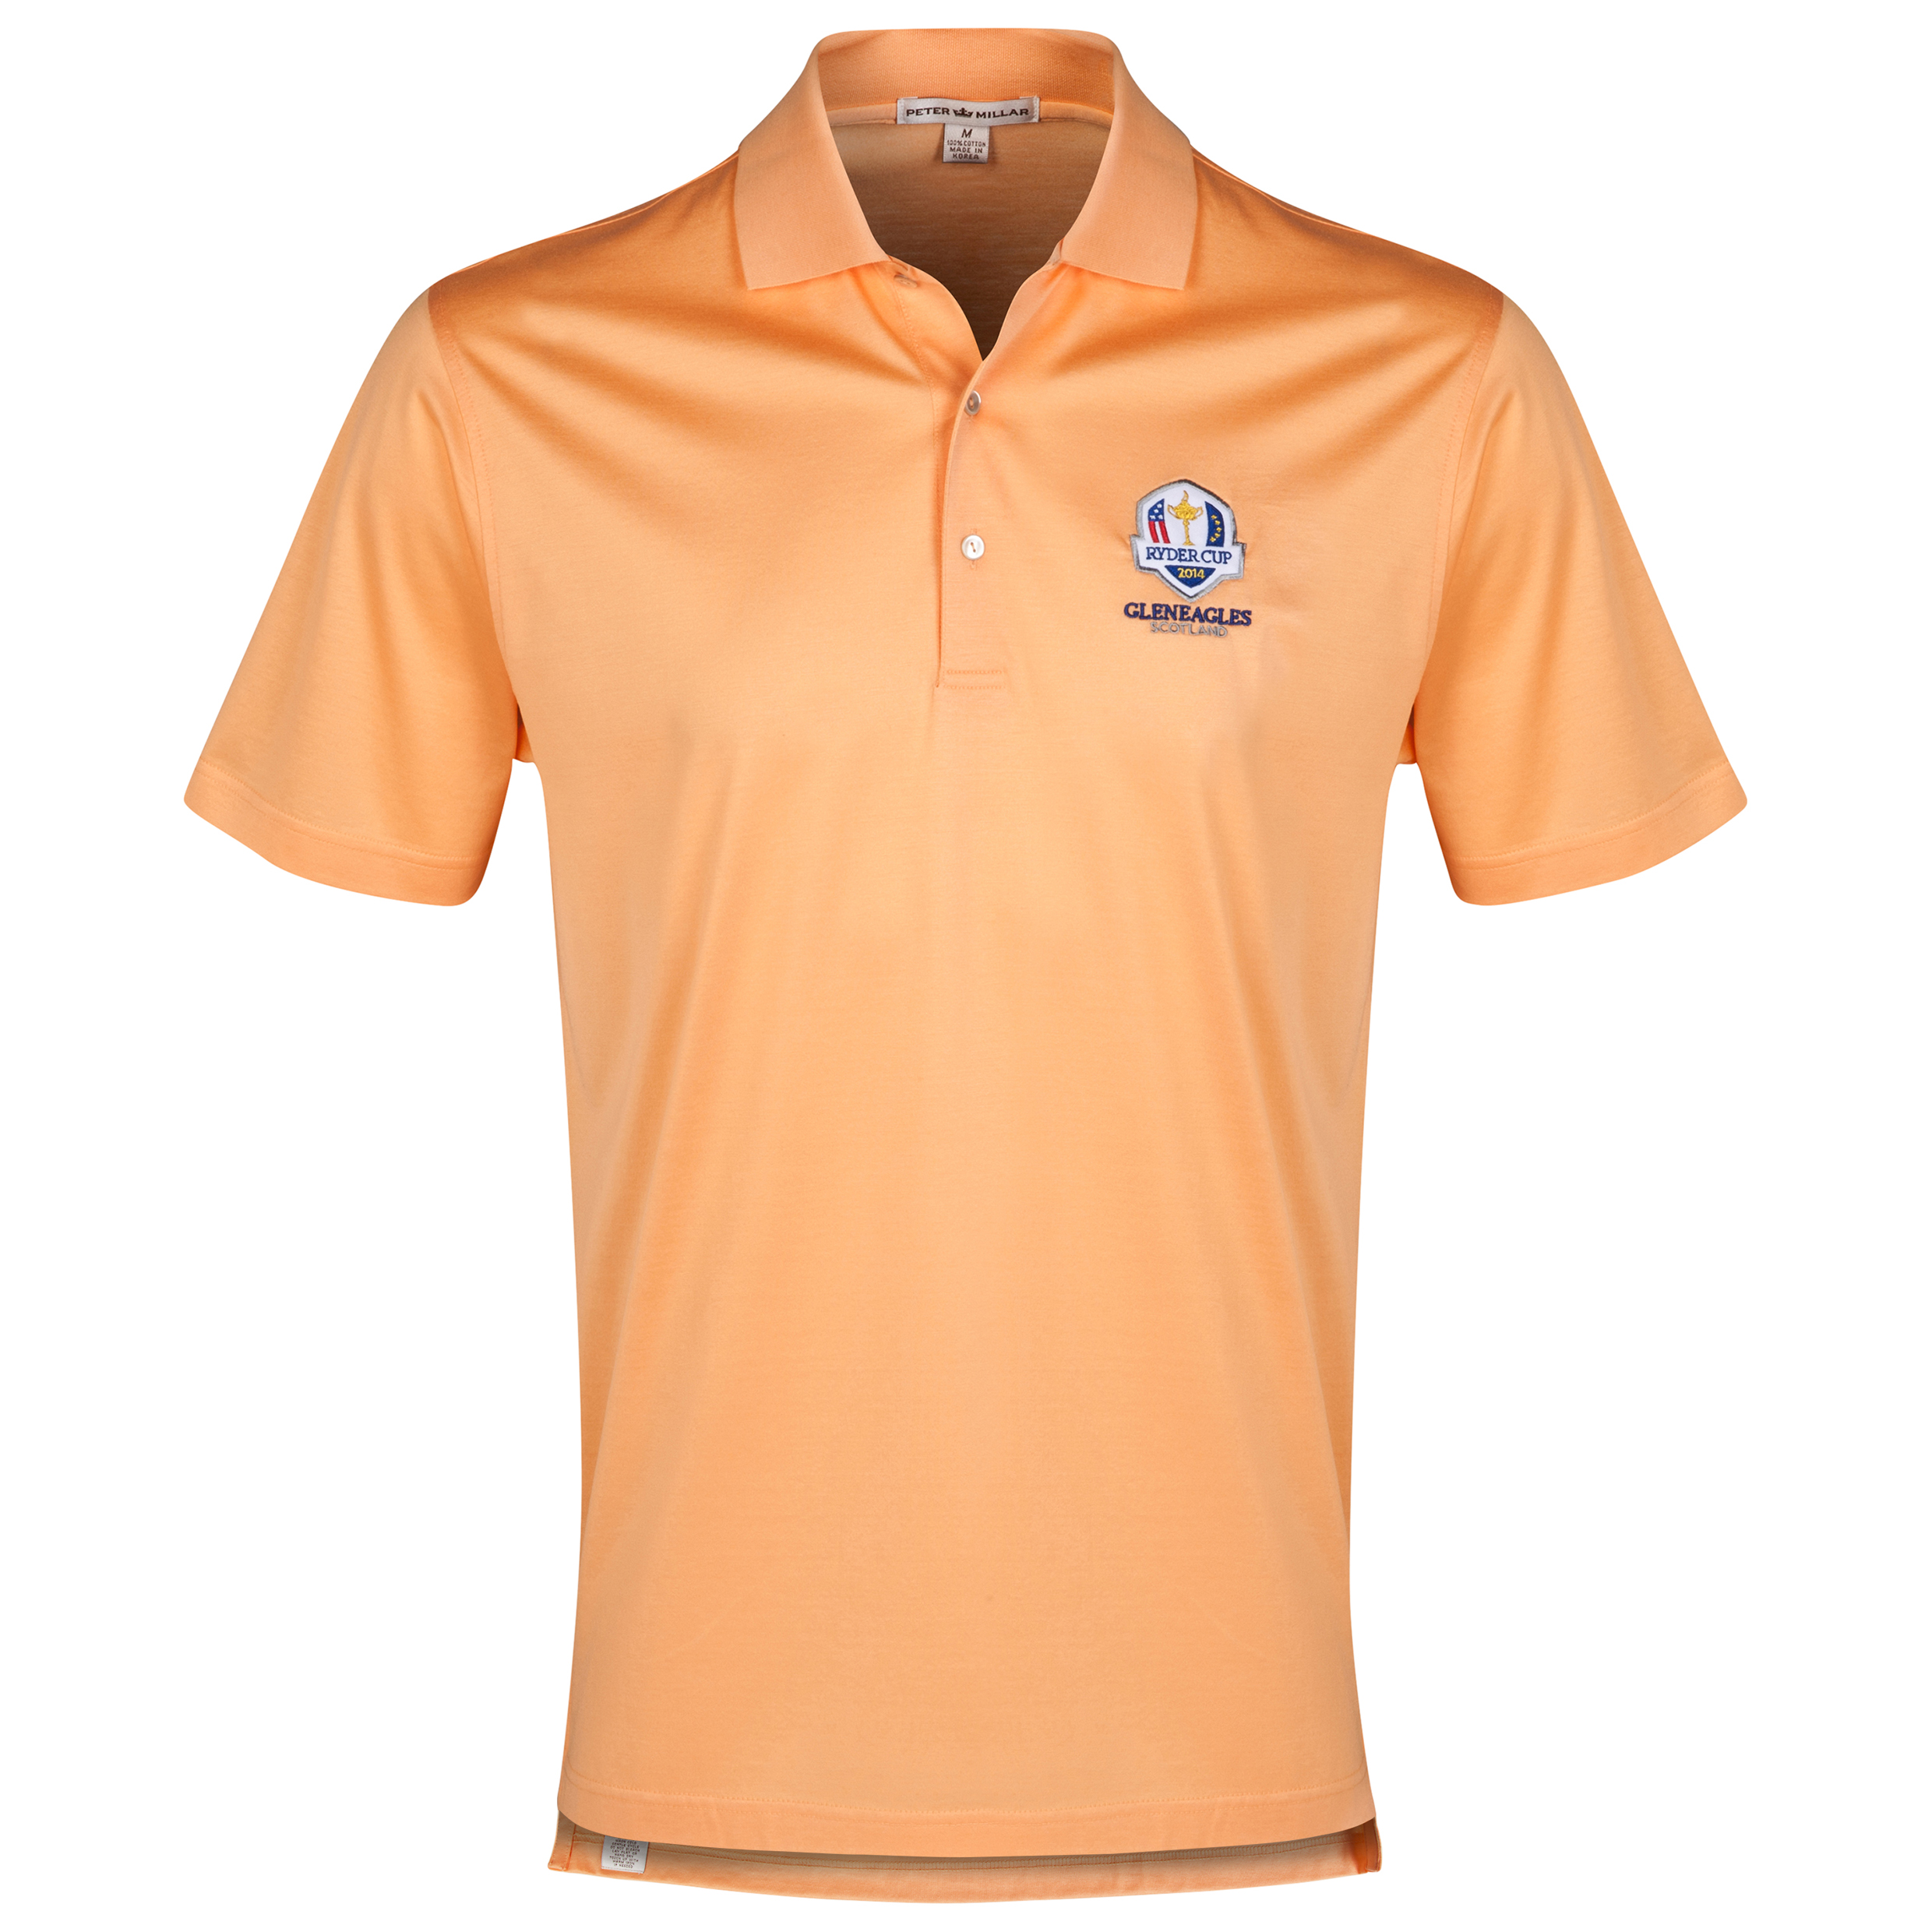 The 2014 Ryder Cup Peter Millar Solid Cotton Lisle Polo